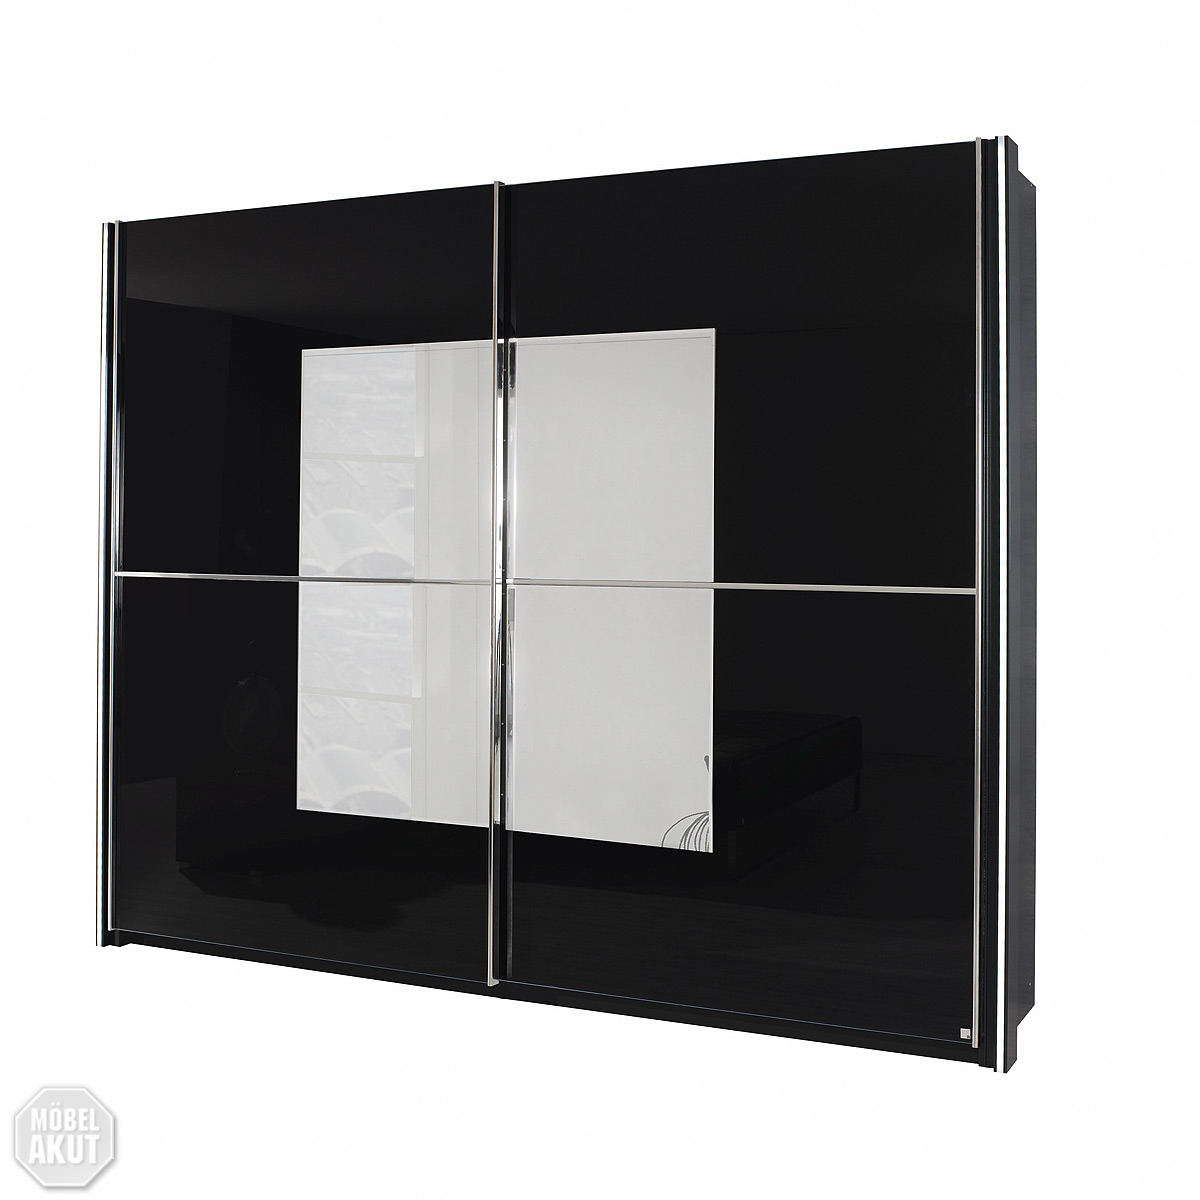 schwebet renschrank nala kleiderschrank schrank schwarz glas spiegel 270 cm ebay. Black Bedroom Furniture Sets. Home Design Ideas